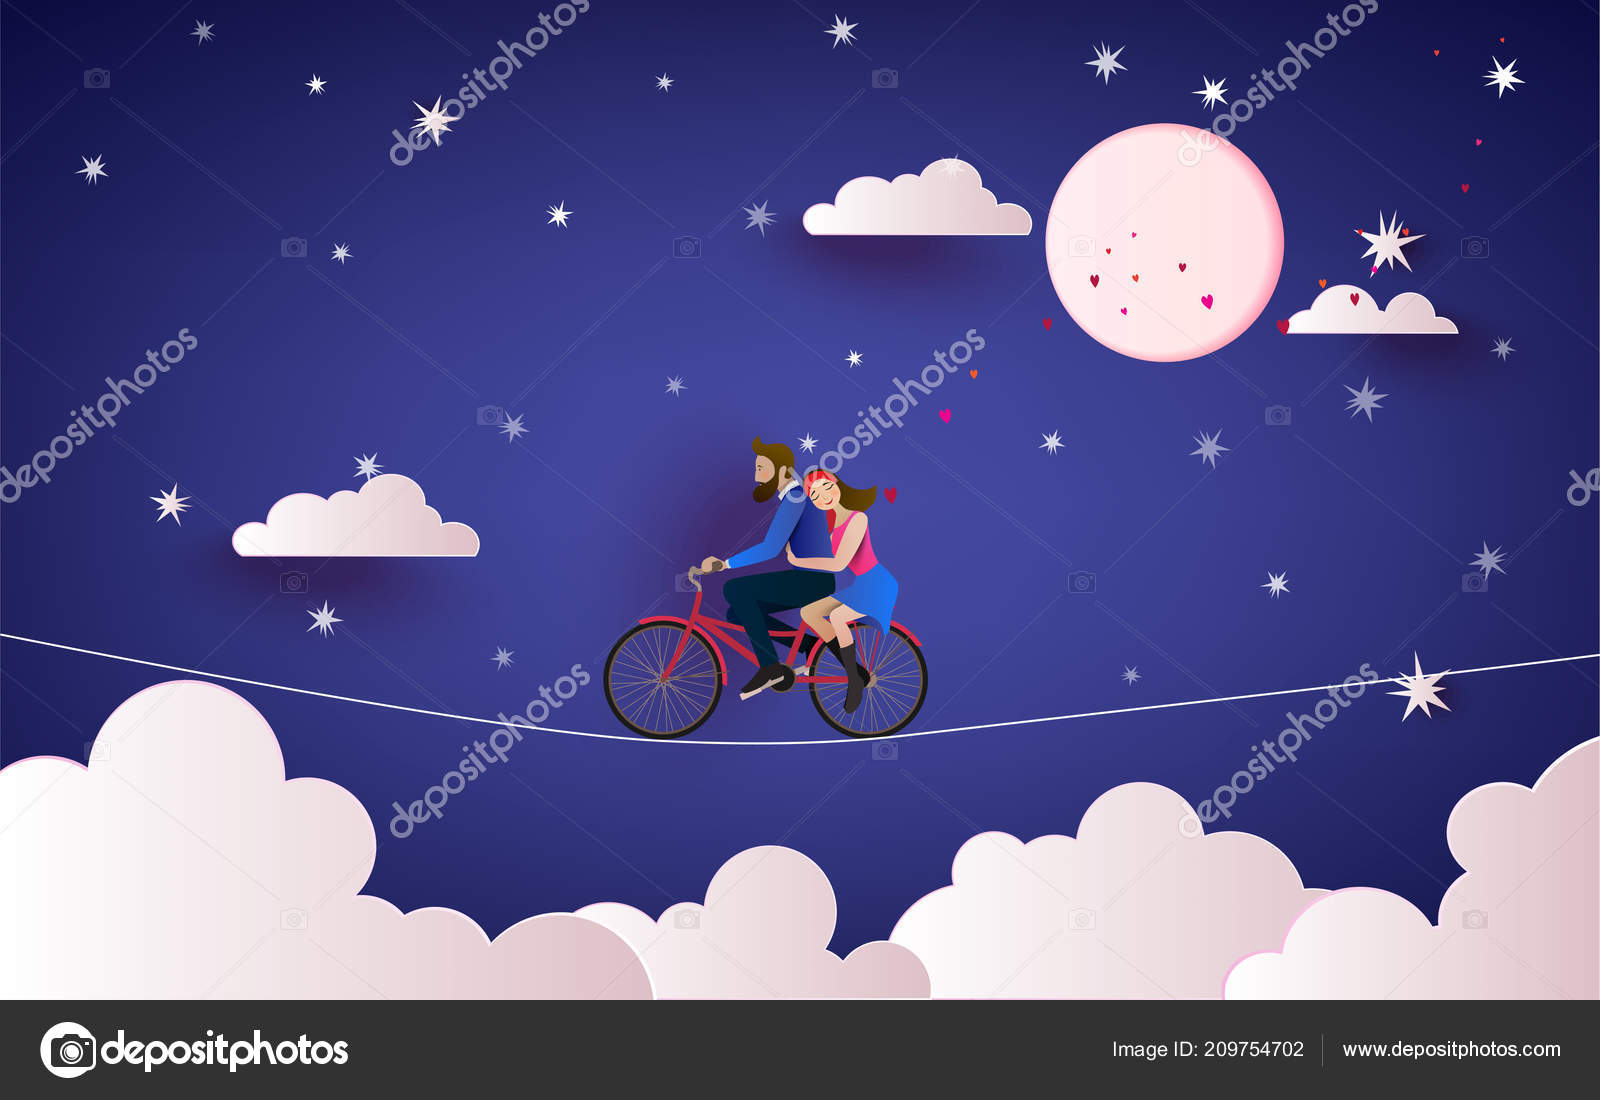 Couple Riding Bicycle Night Sky Love Concept Happy Valentine